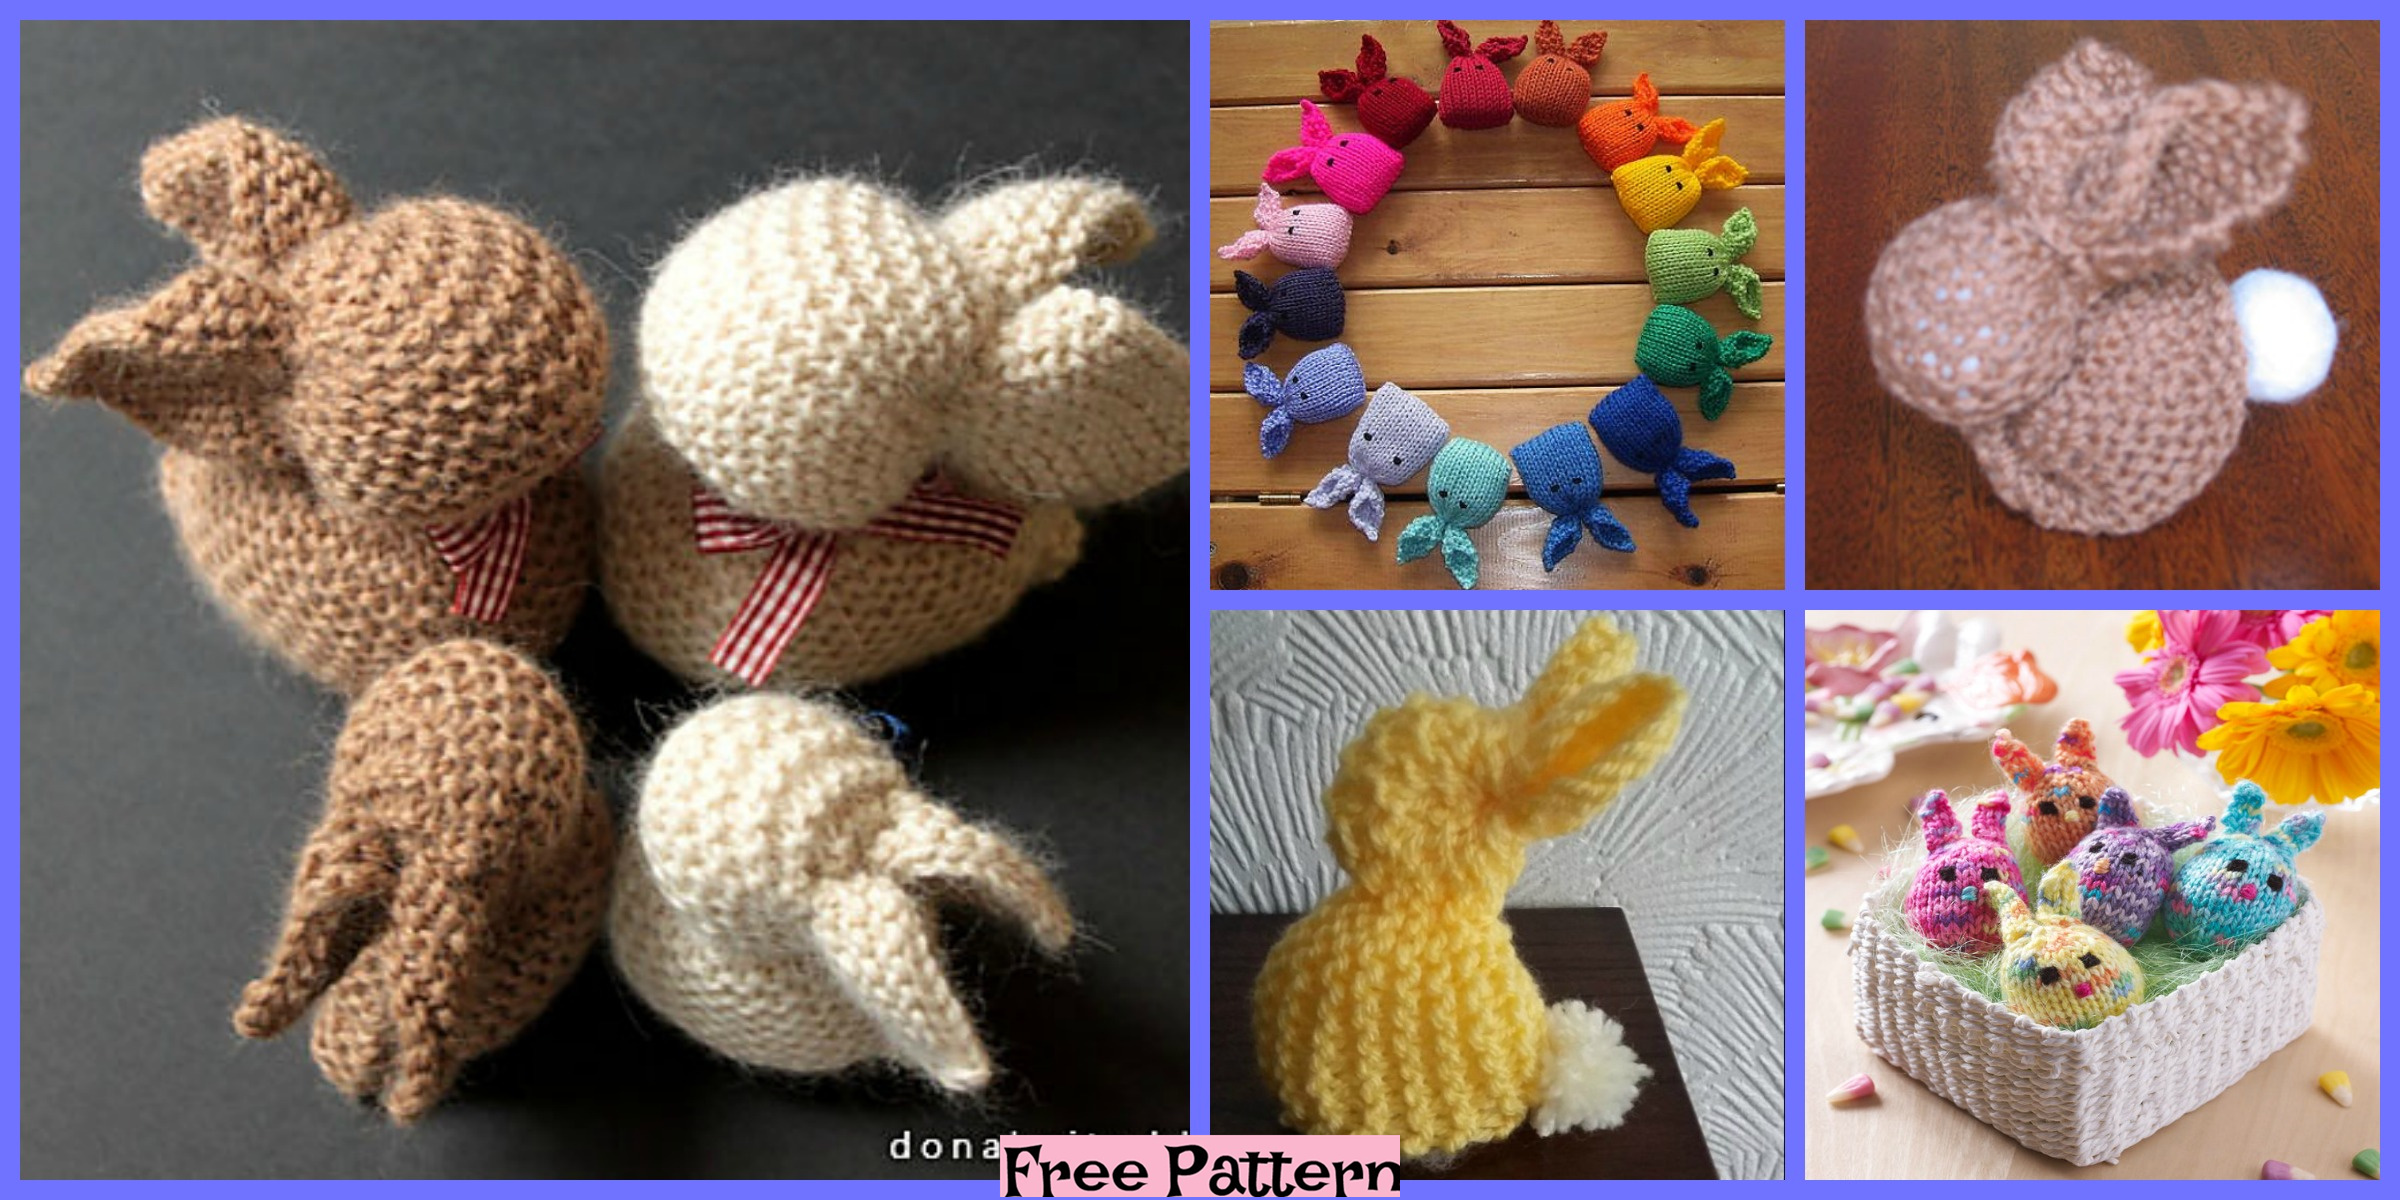 6 knitted Easter Bunnies – Free Patterns